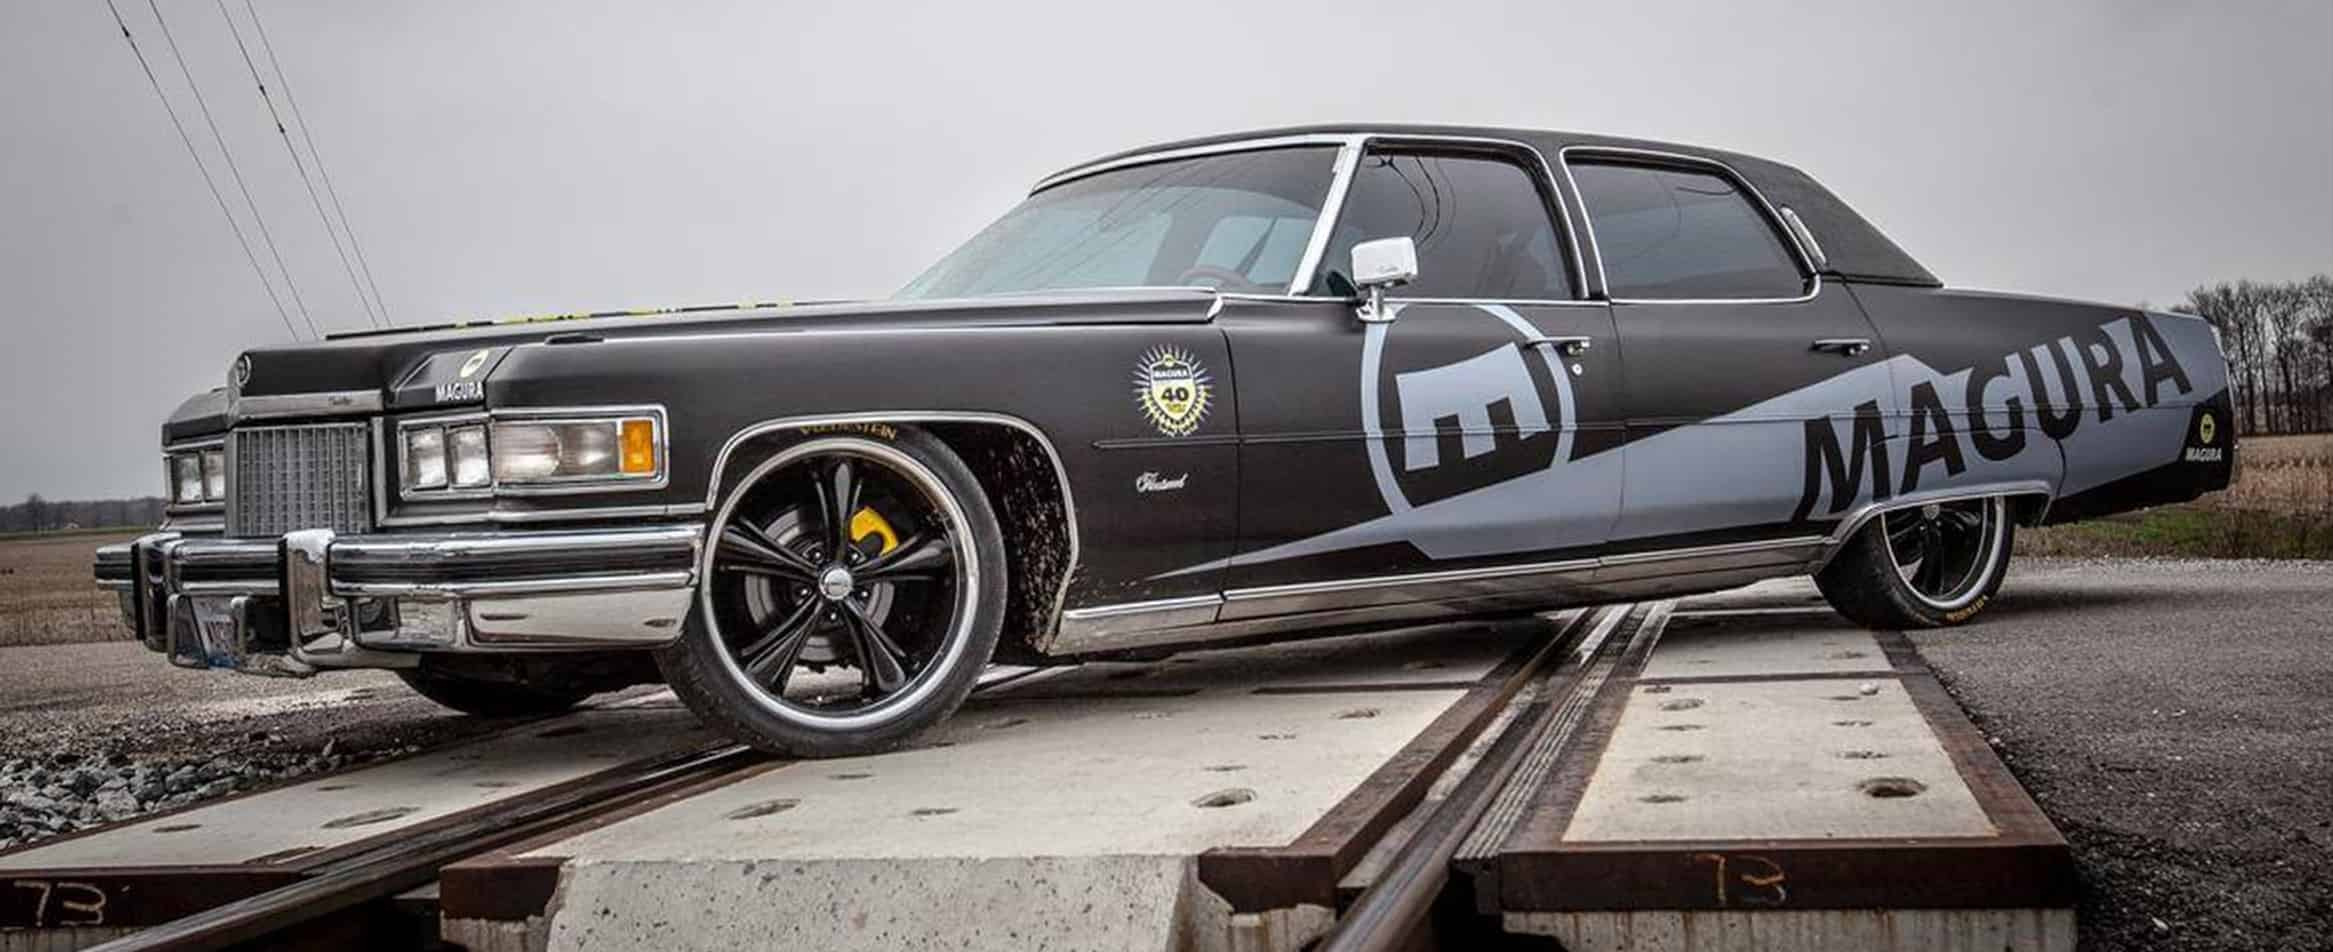 1975 Cadillac, Pick of the Day: Customized '75 Cadillac, ClassicCars.com Journal